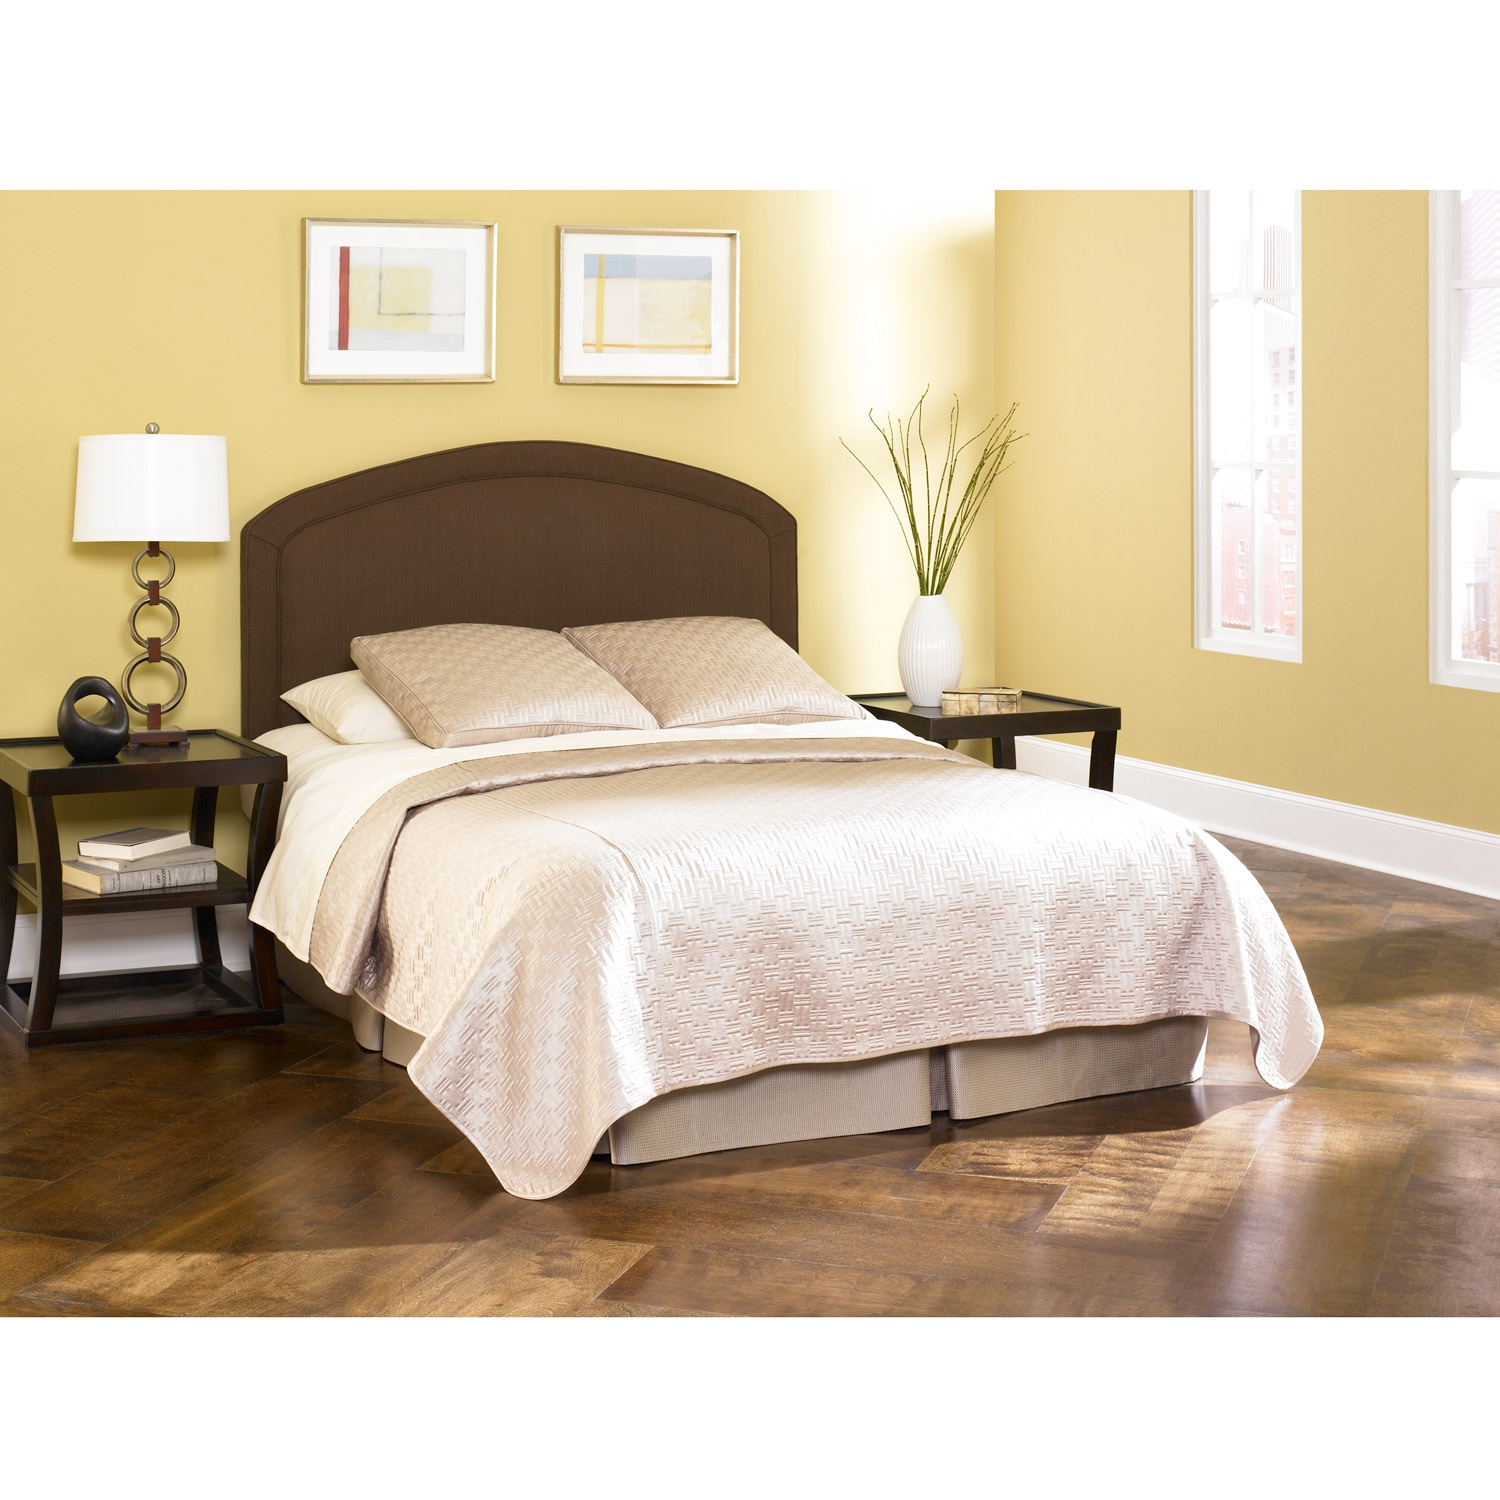 Cherbourg Deep Chocolate Upholstered King/ Cal King-size Headboard